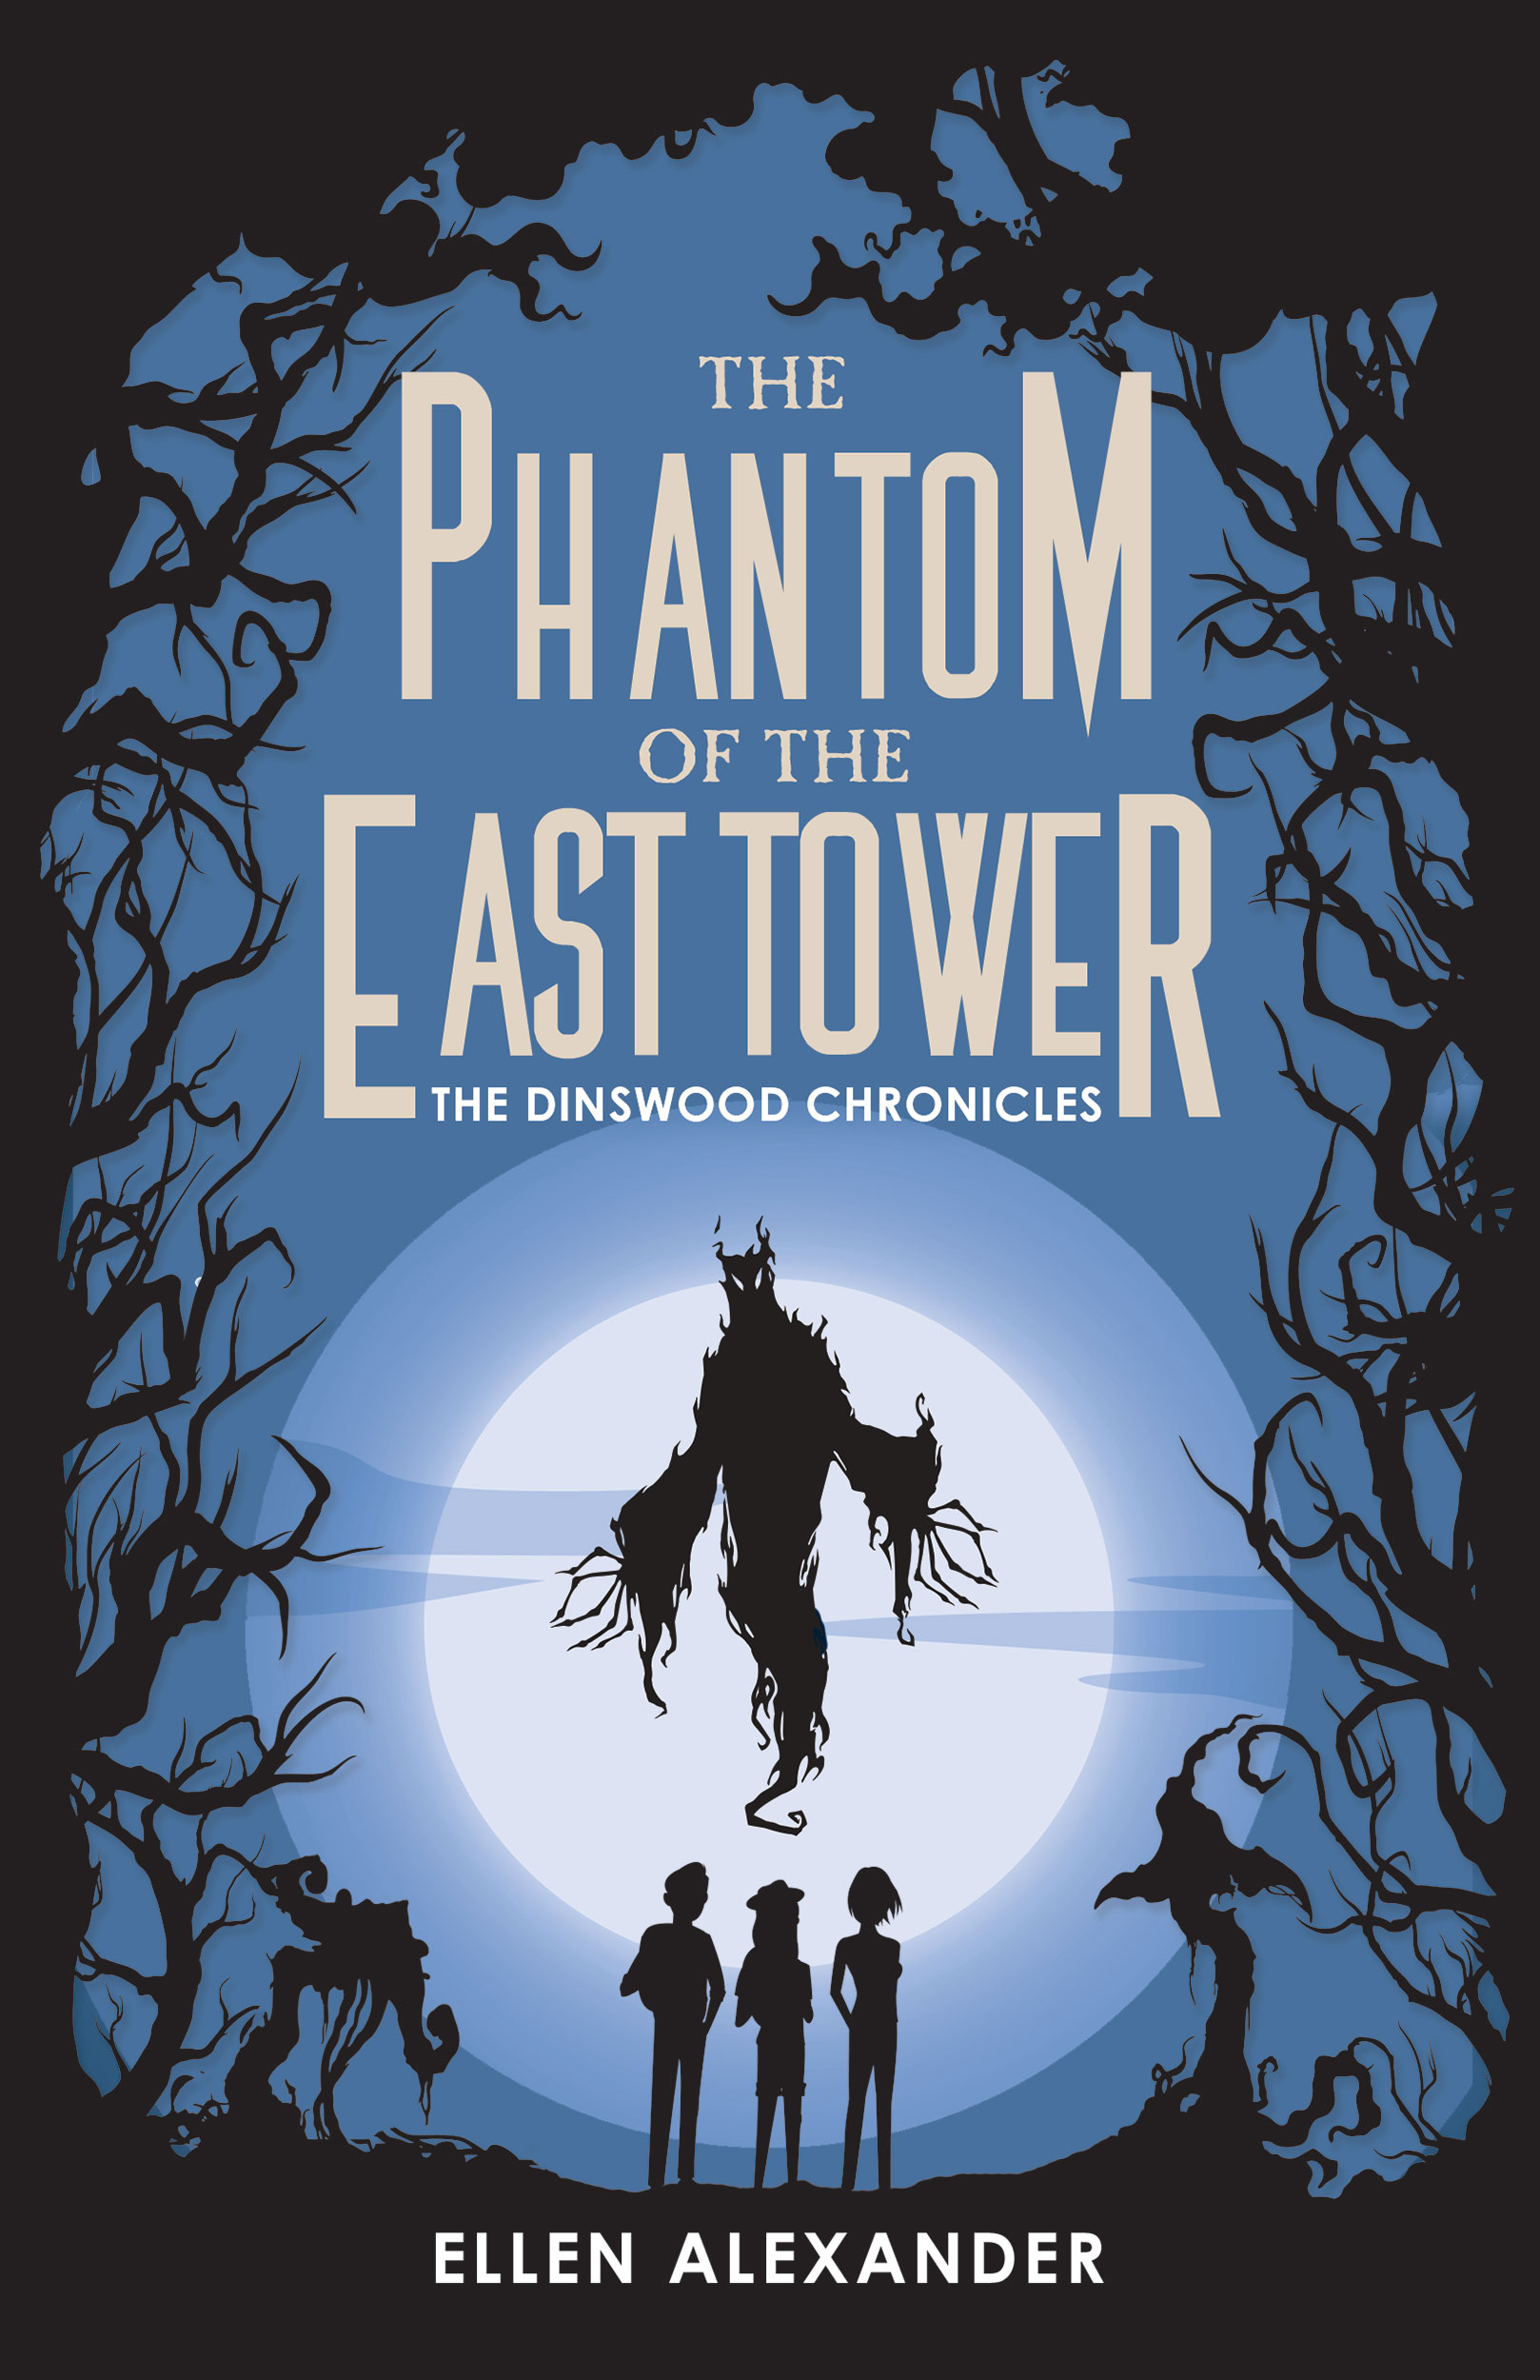 The Phantom of the East Tower (The Dinswood Chronicles #3) by Ellen Alexander